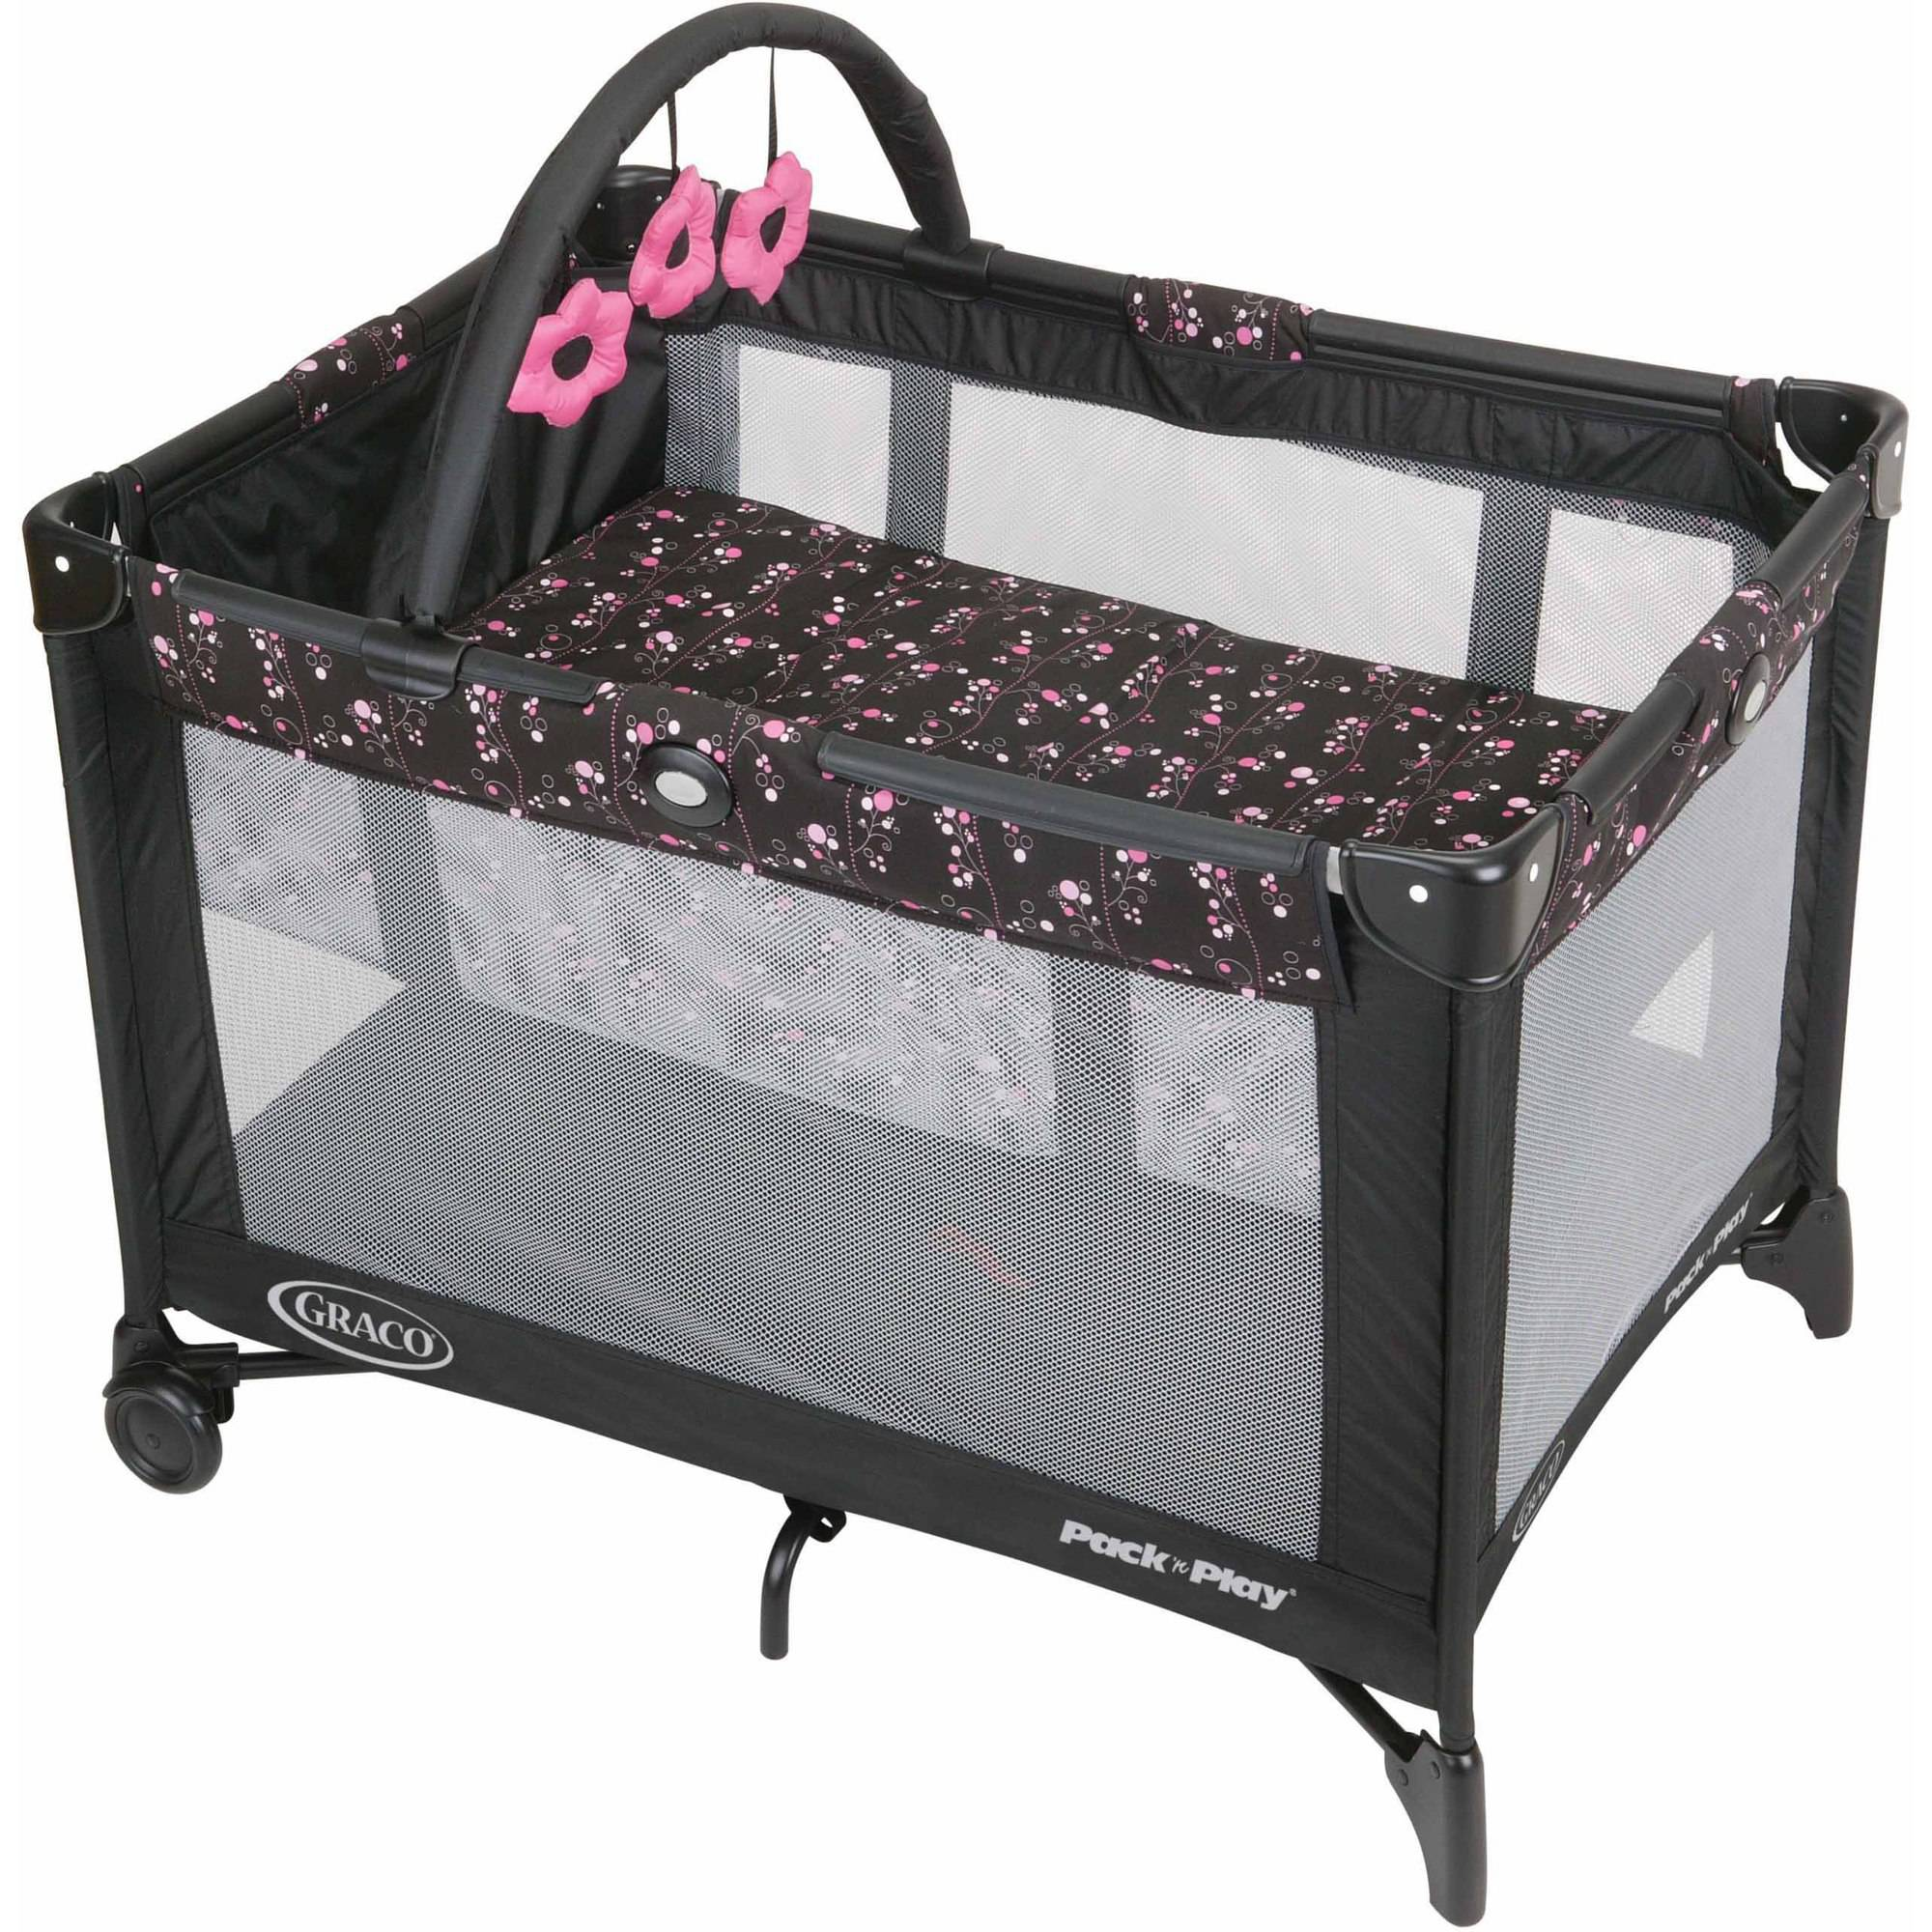 Graco Pack 'N Play with Automatic Folding Feet Playard, Priscilla